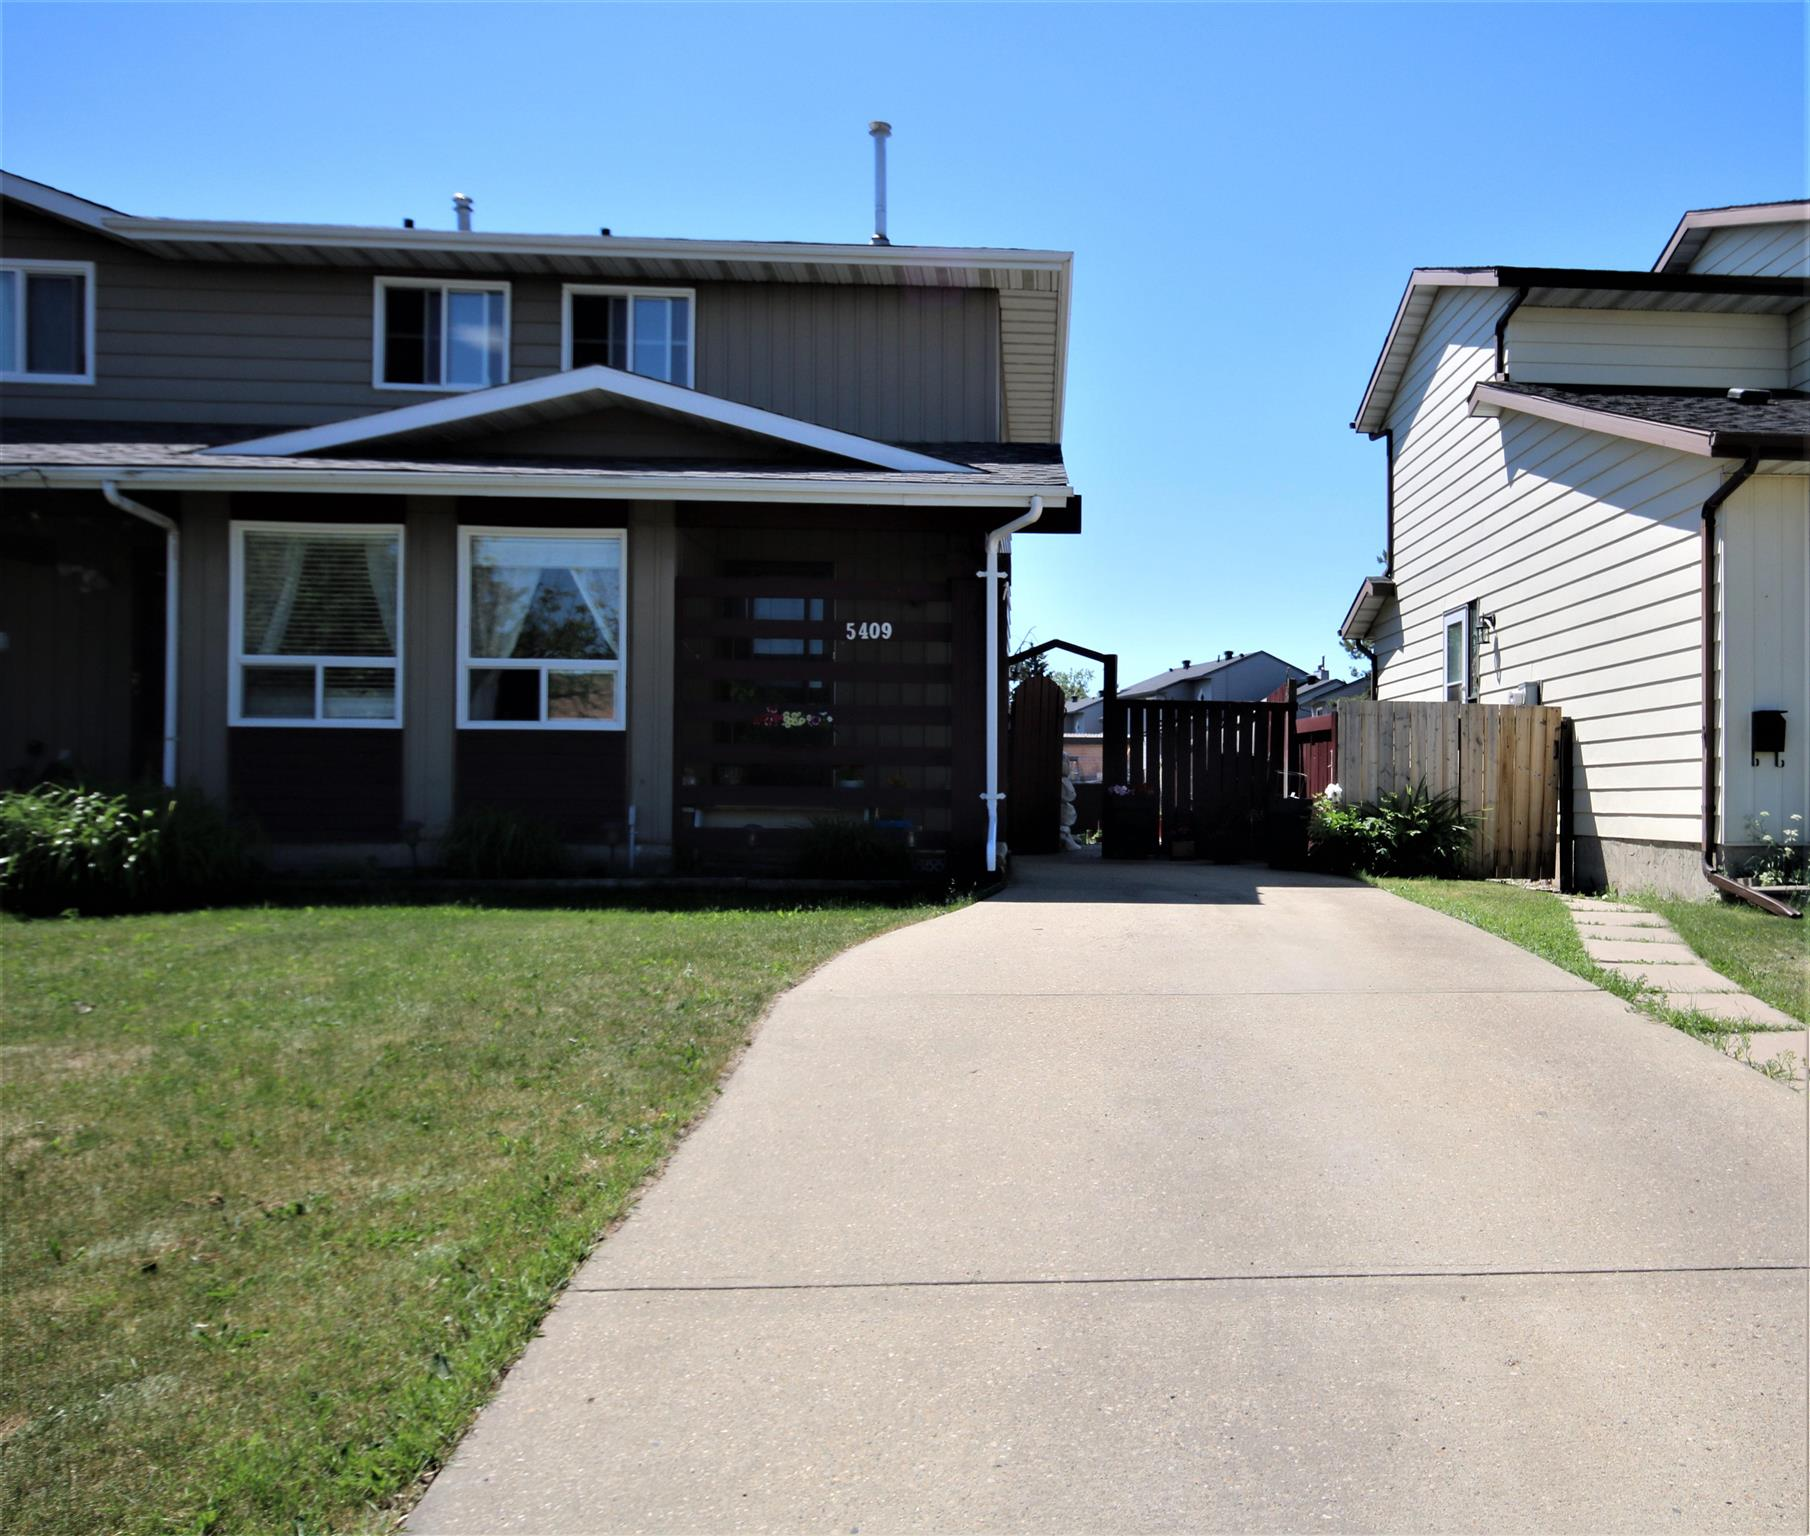 A perfect starter home with no condo fees. Well maintained house with SEPARATE ENTRANCE to the Basement. In the last 7-10 years Shingles, Vinyl Windows, Doors, Appliances, furnace was replaced. Close to schools, public & private. Upper floor comes with 3 bedrooms and 4 pcs bath. Large kitchen, formal dining, very bright living and half bath on the main. Basement has a finished recreation room. Potential for an extra bedroom. Huge back yard with south exposure. Quiet street with minimal traffic. Great location in Greenview very close to all amenities.